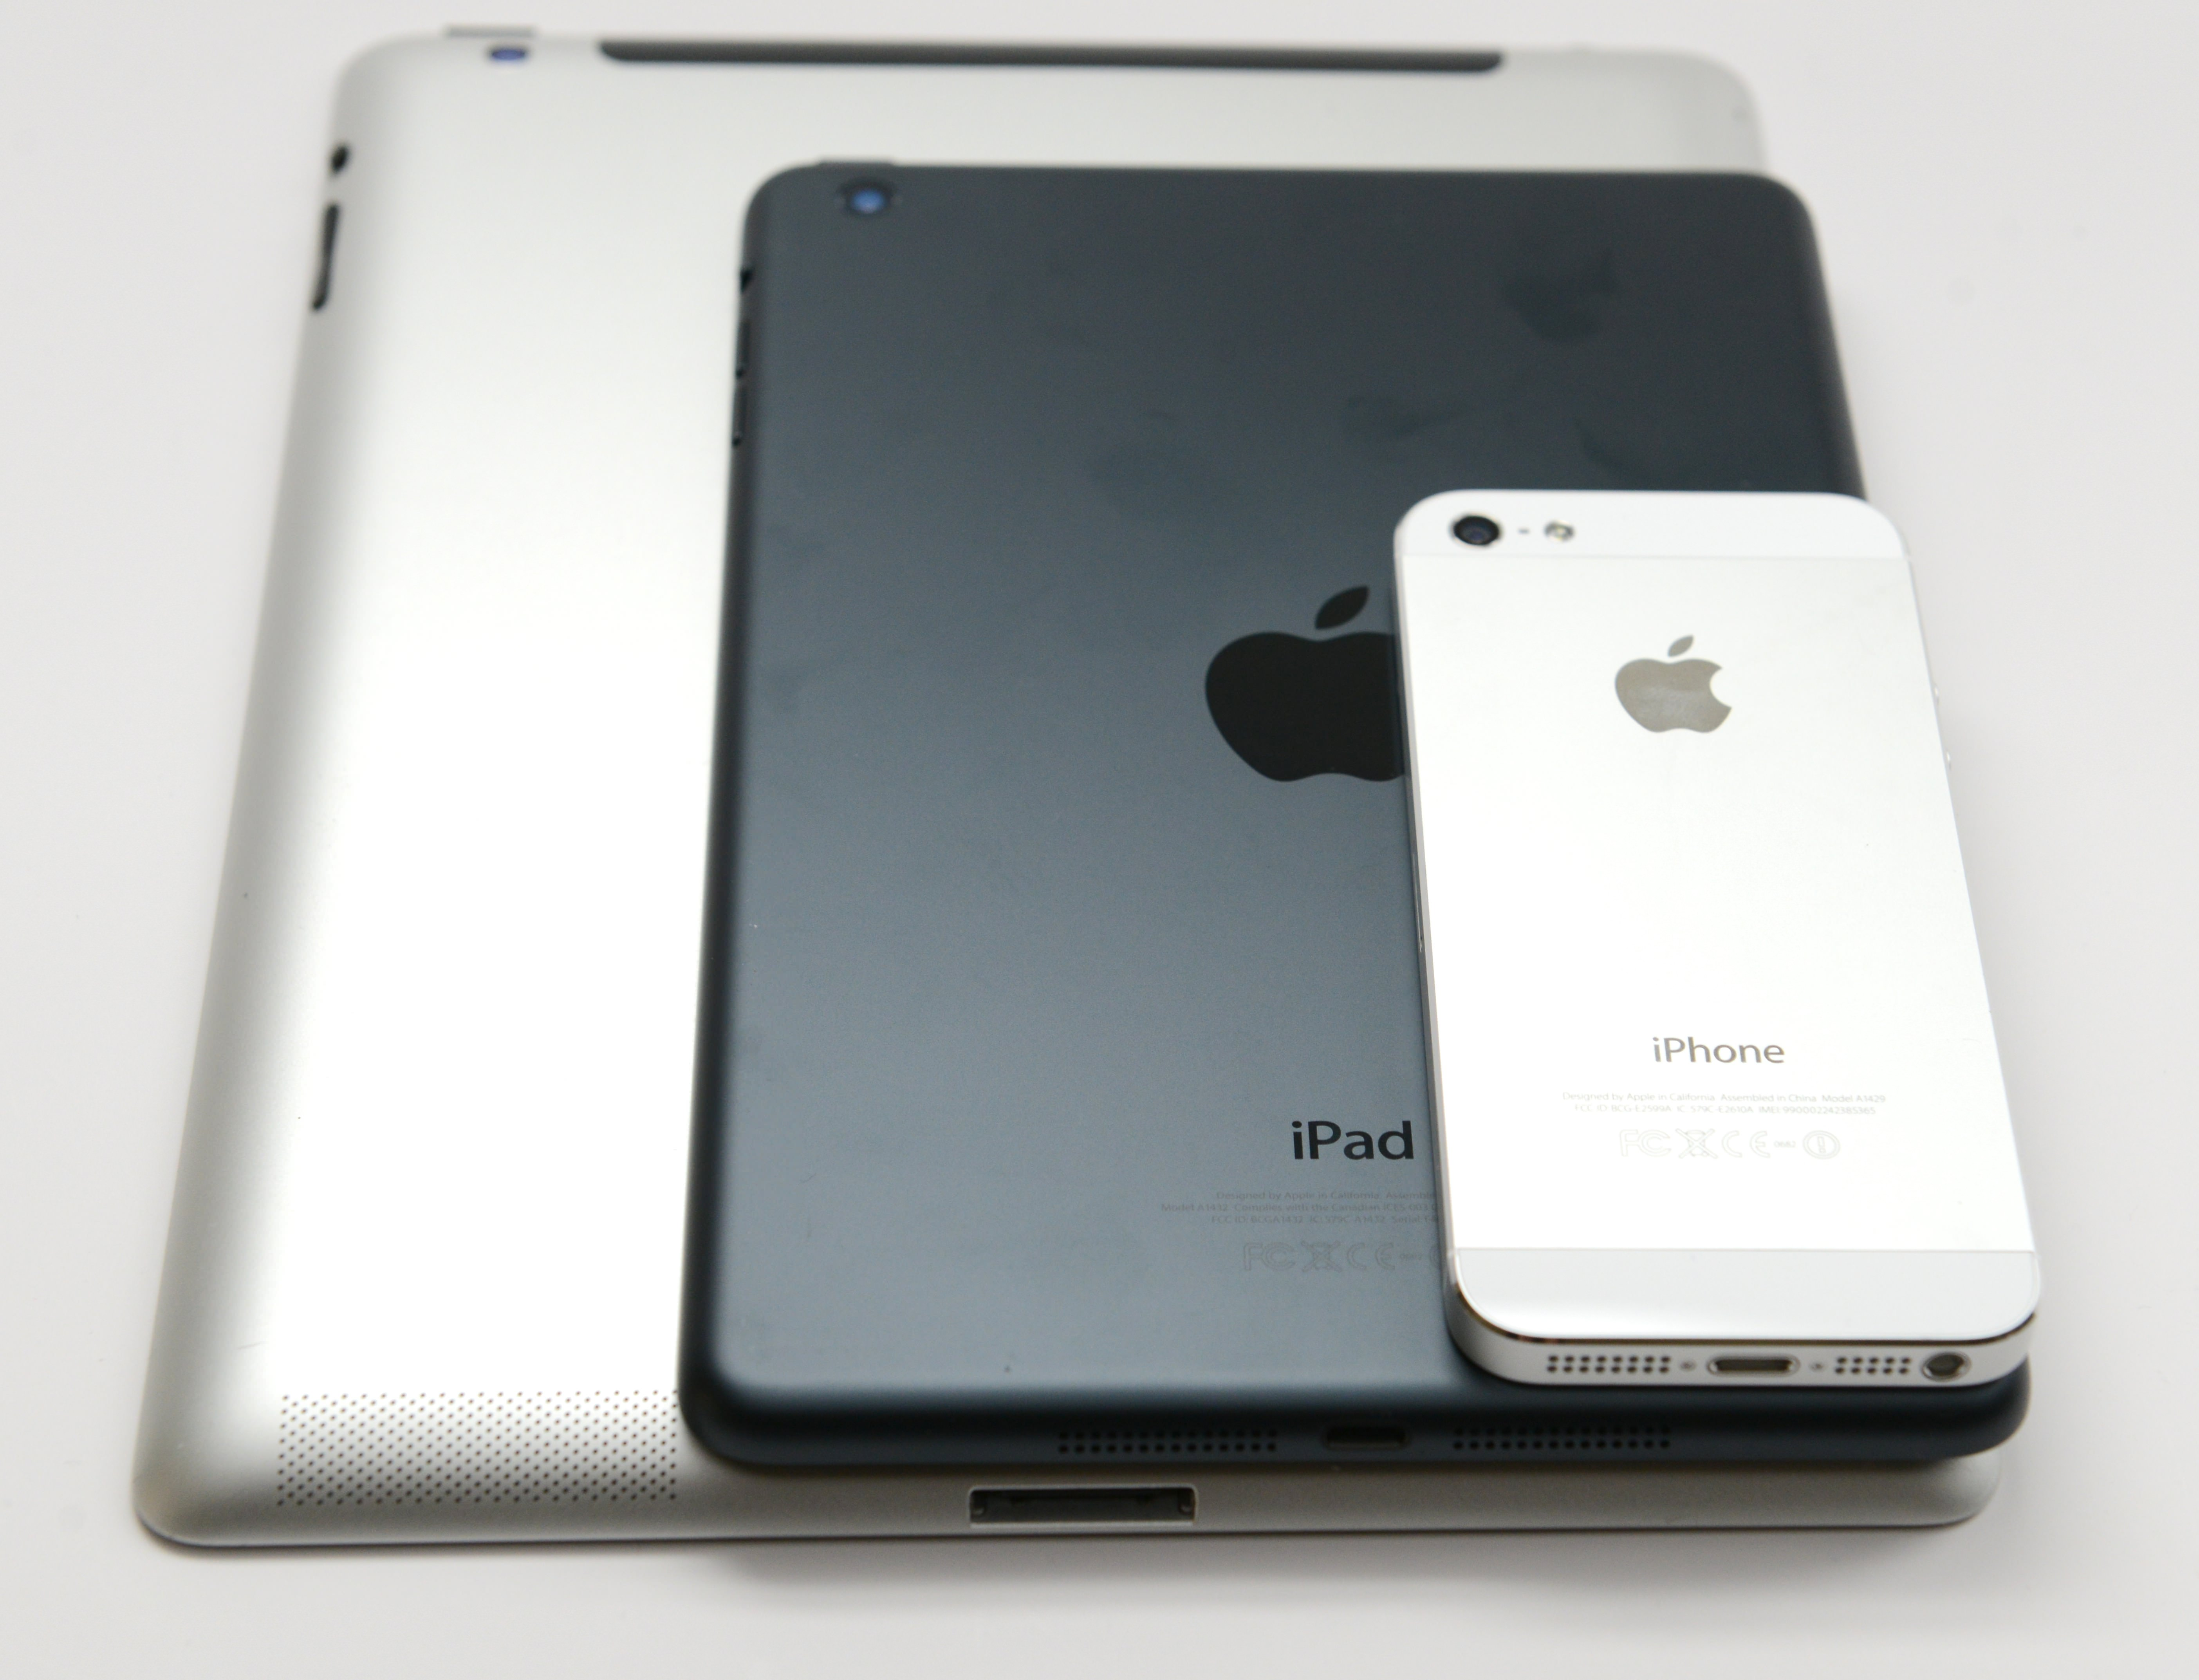 New iPad and iPhone in September